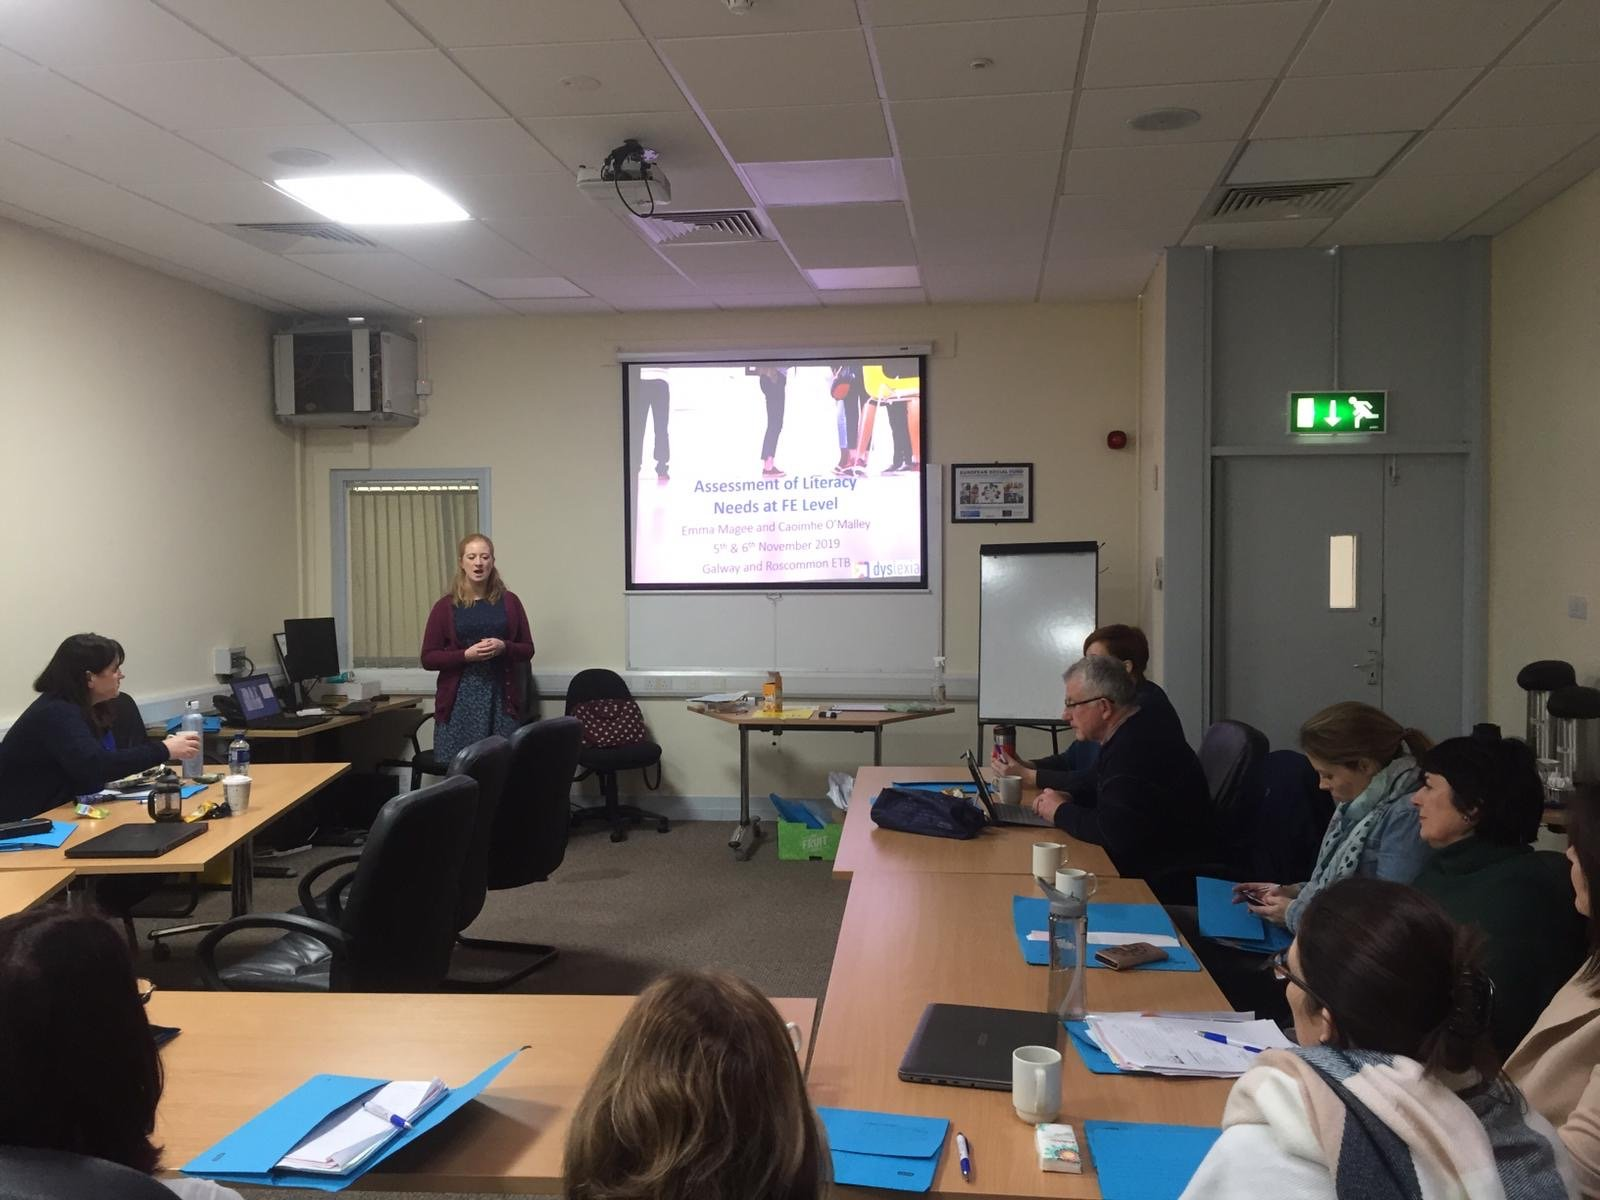 Training being delivered to a group of FET staff